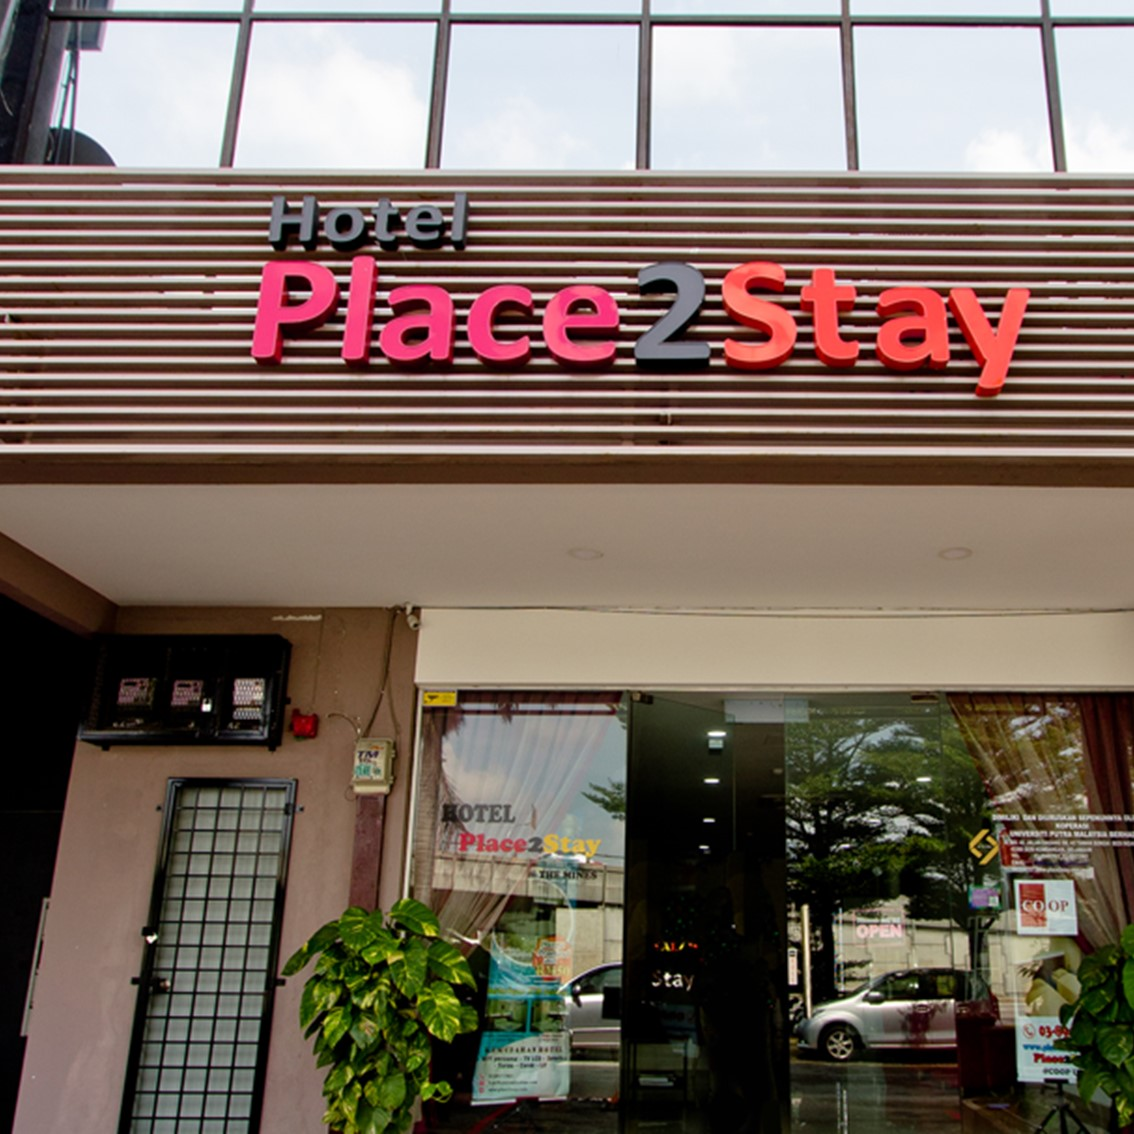 hotelplace2stay